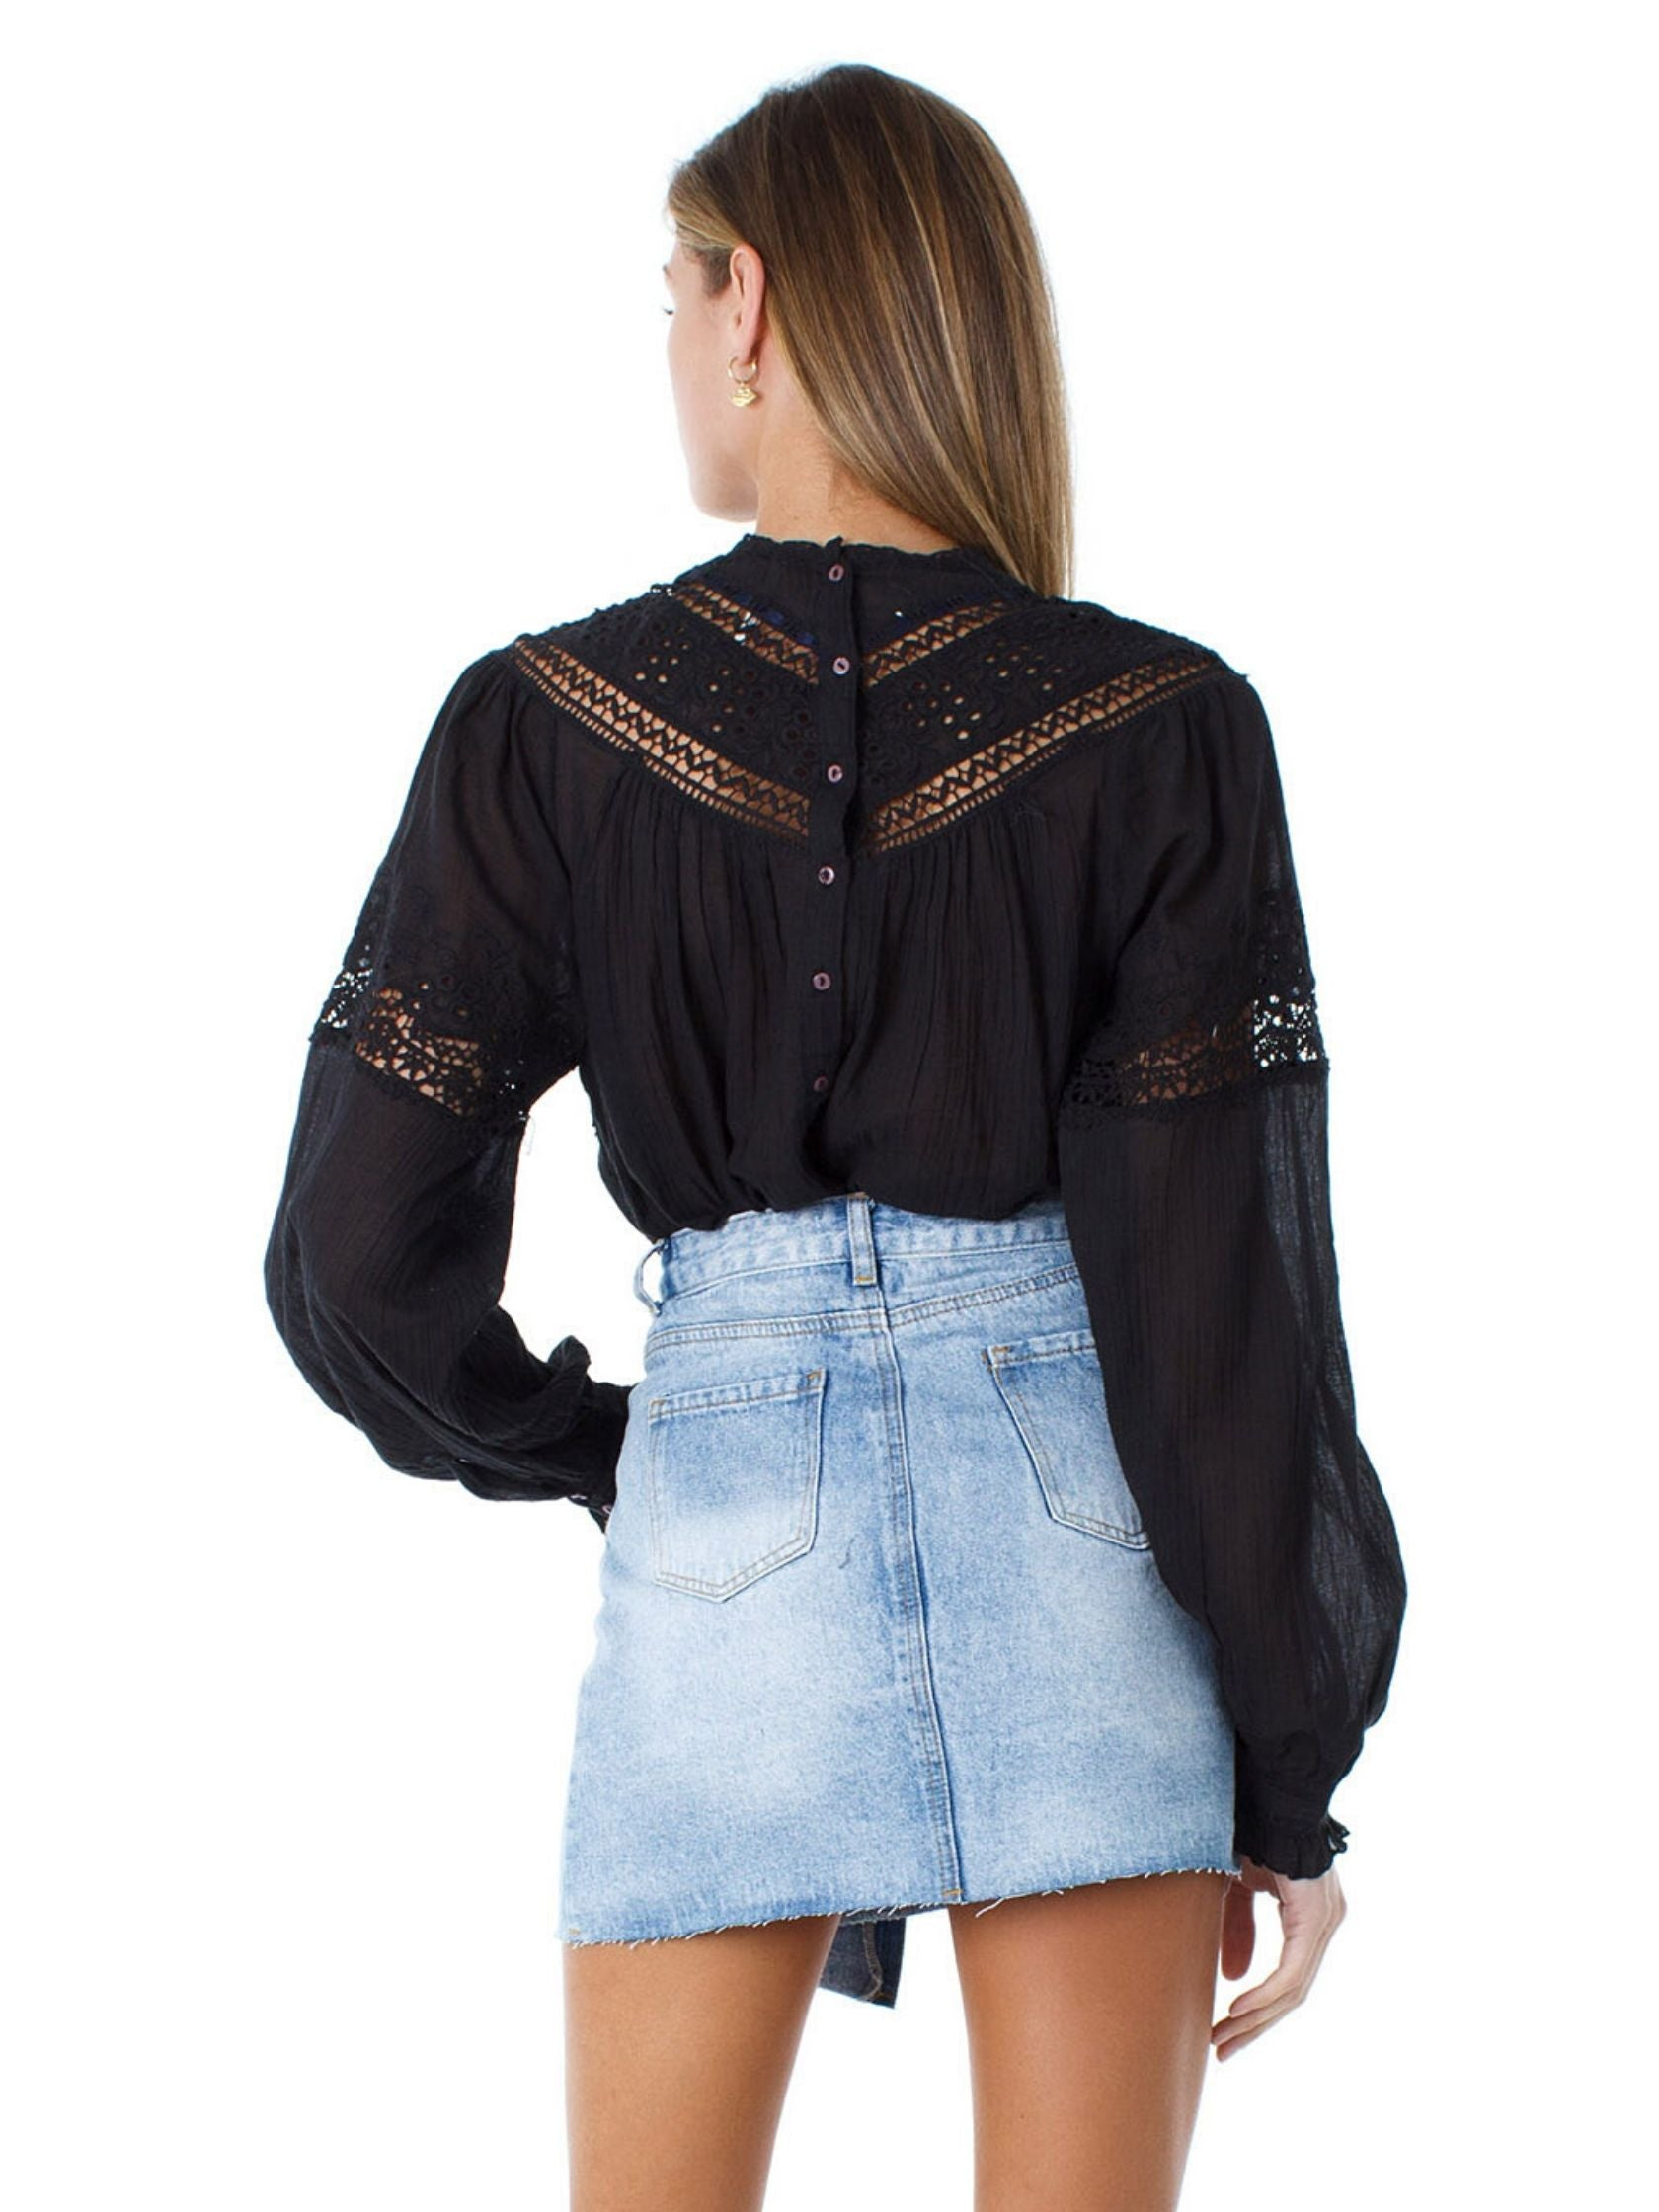 Women outfit in a top rental from Free People called Abigail Victorian Top